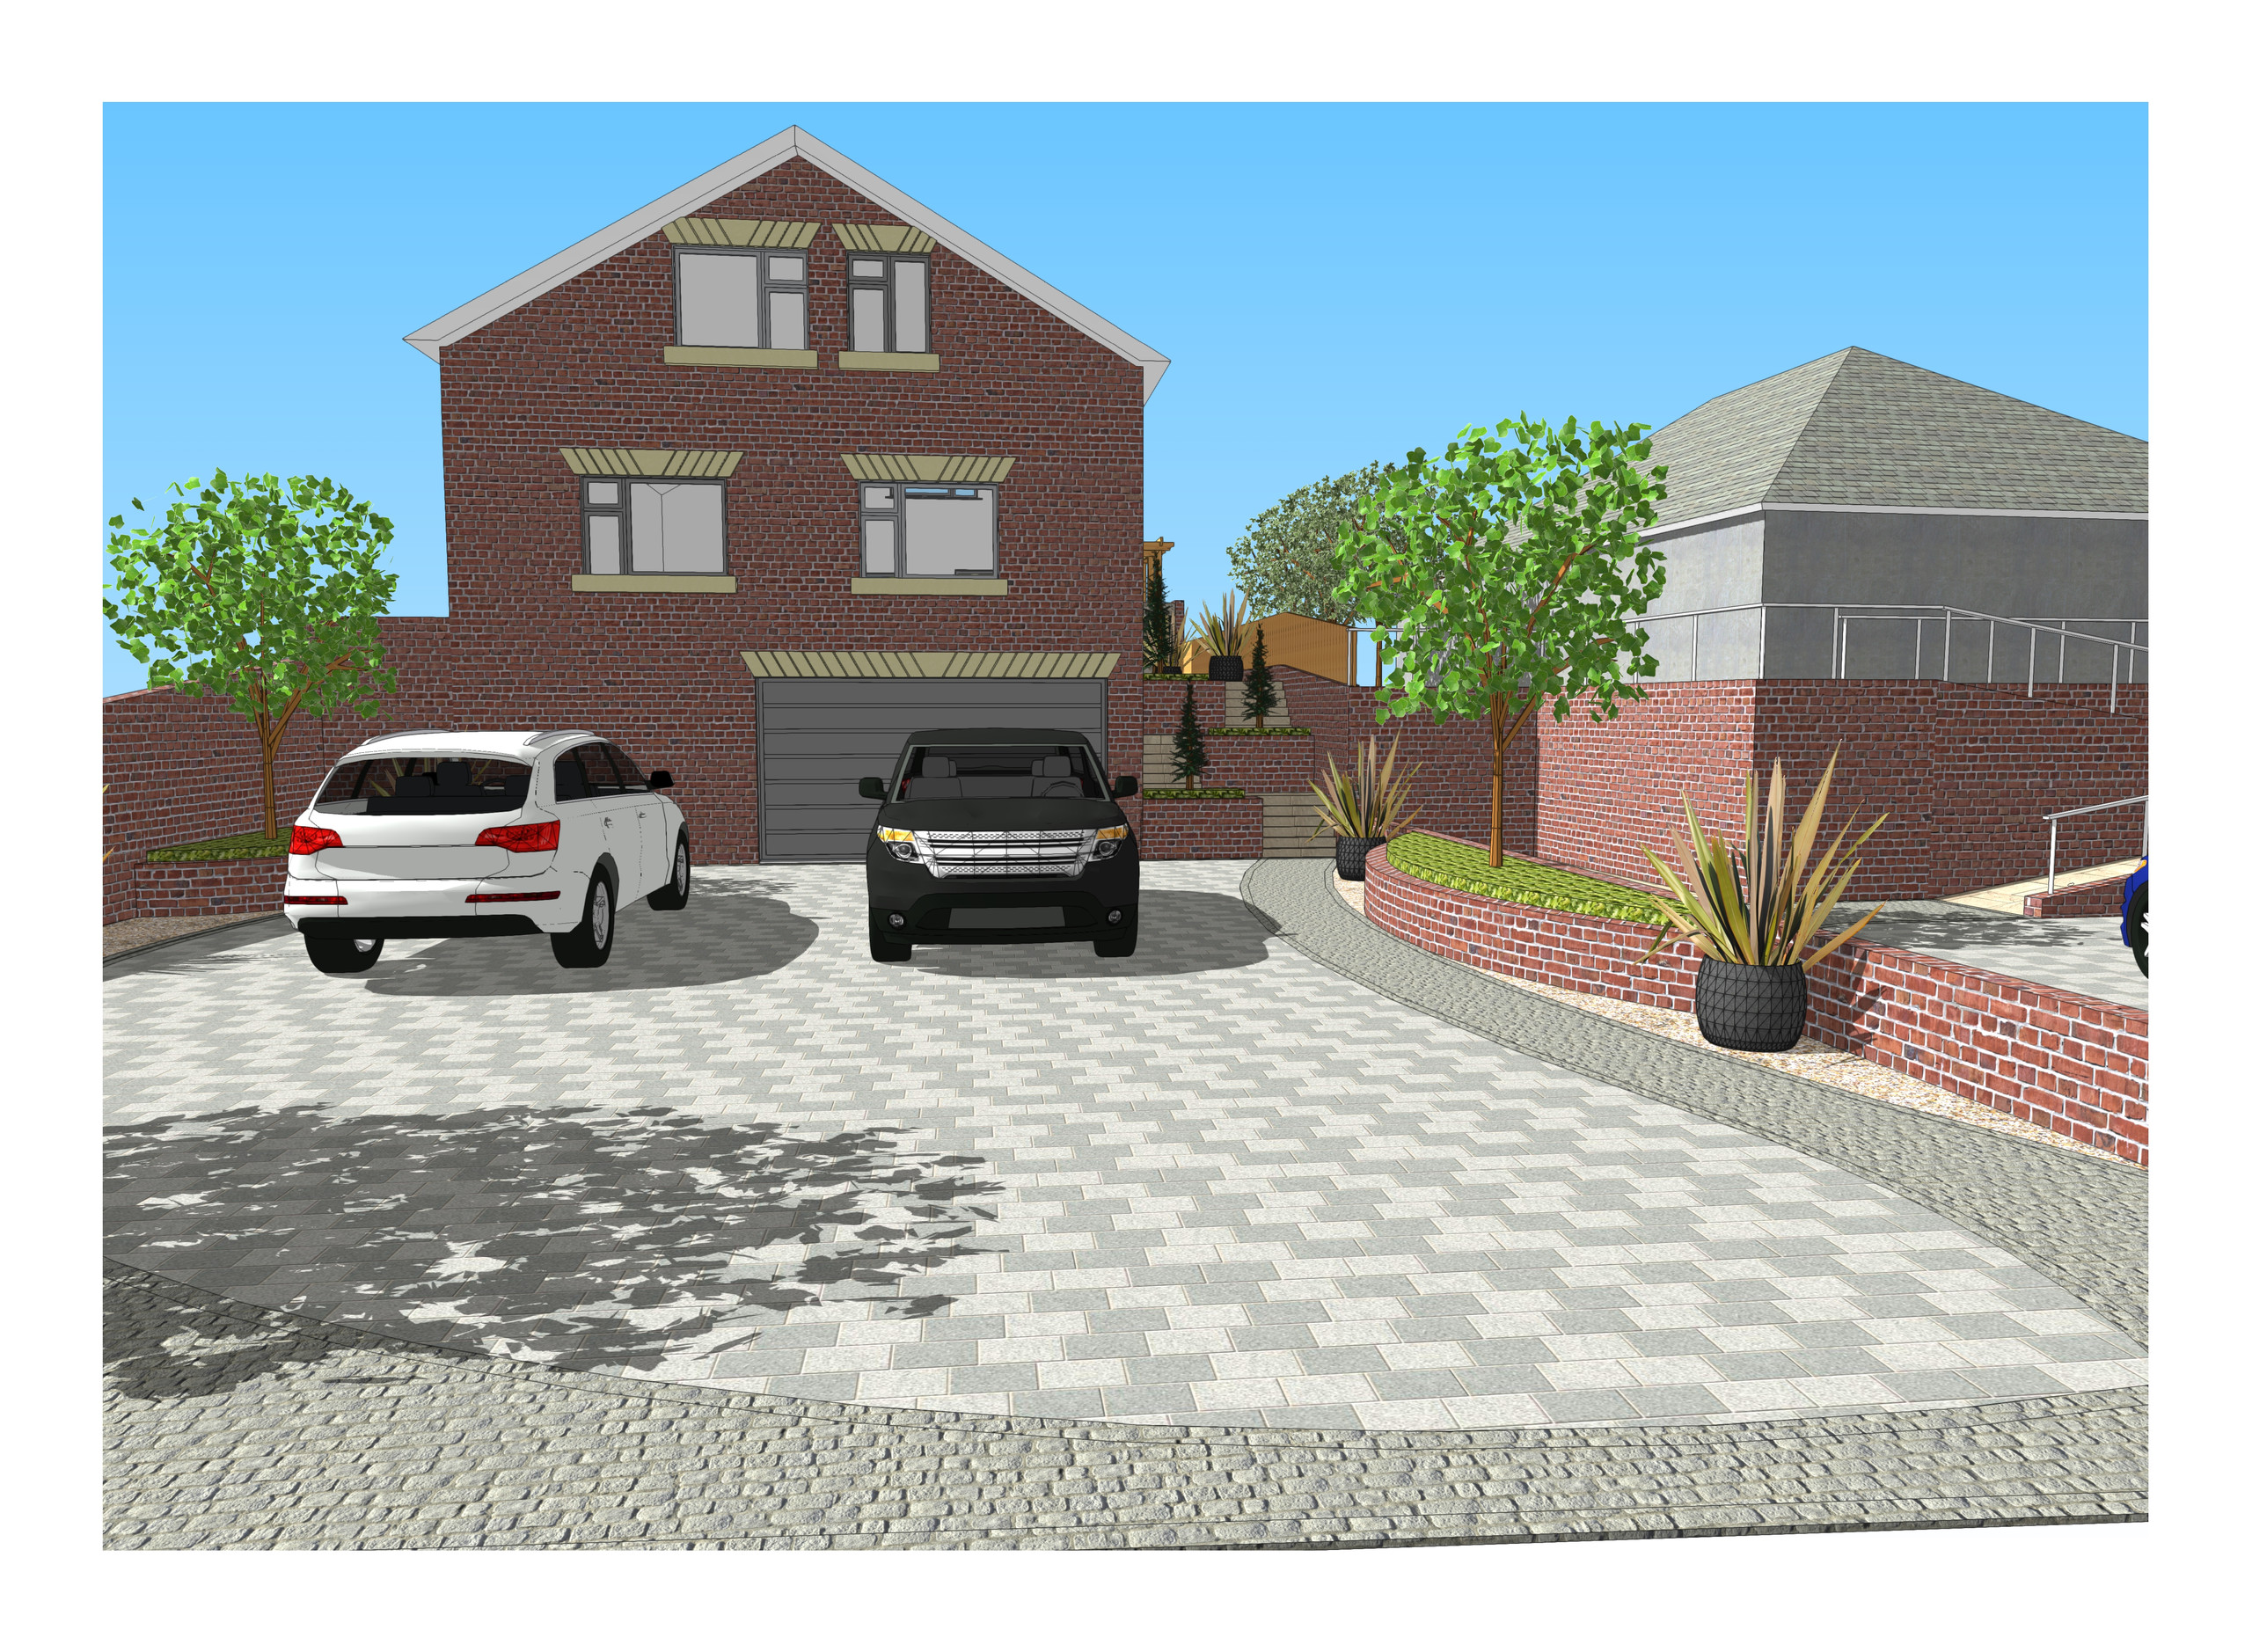 2. 3D images for a new build property in Uton West Yorkshire. Garden designer in Wakefield